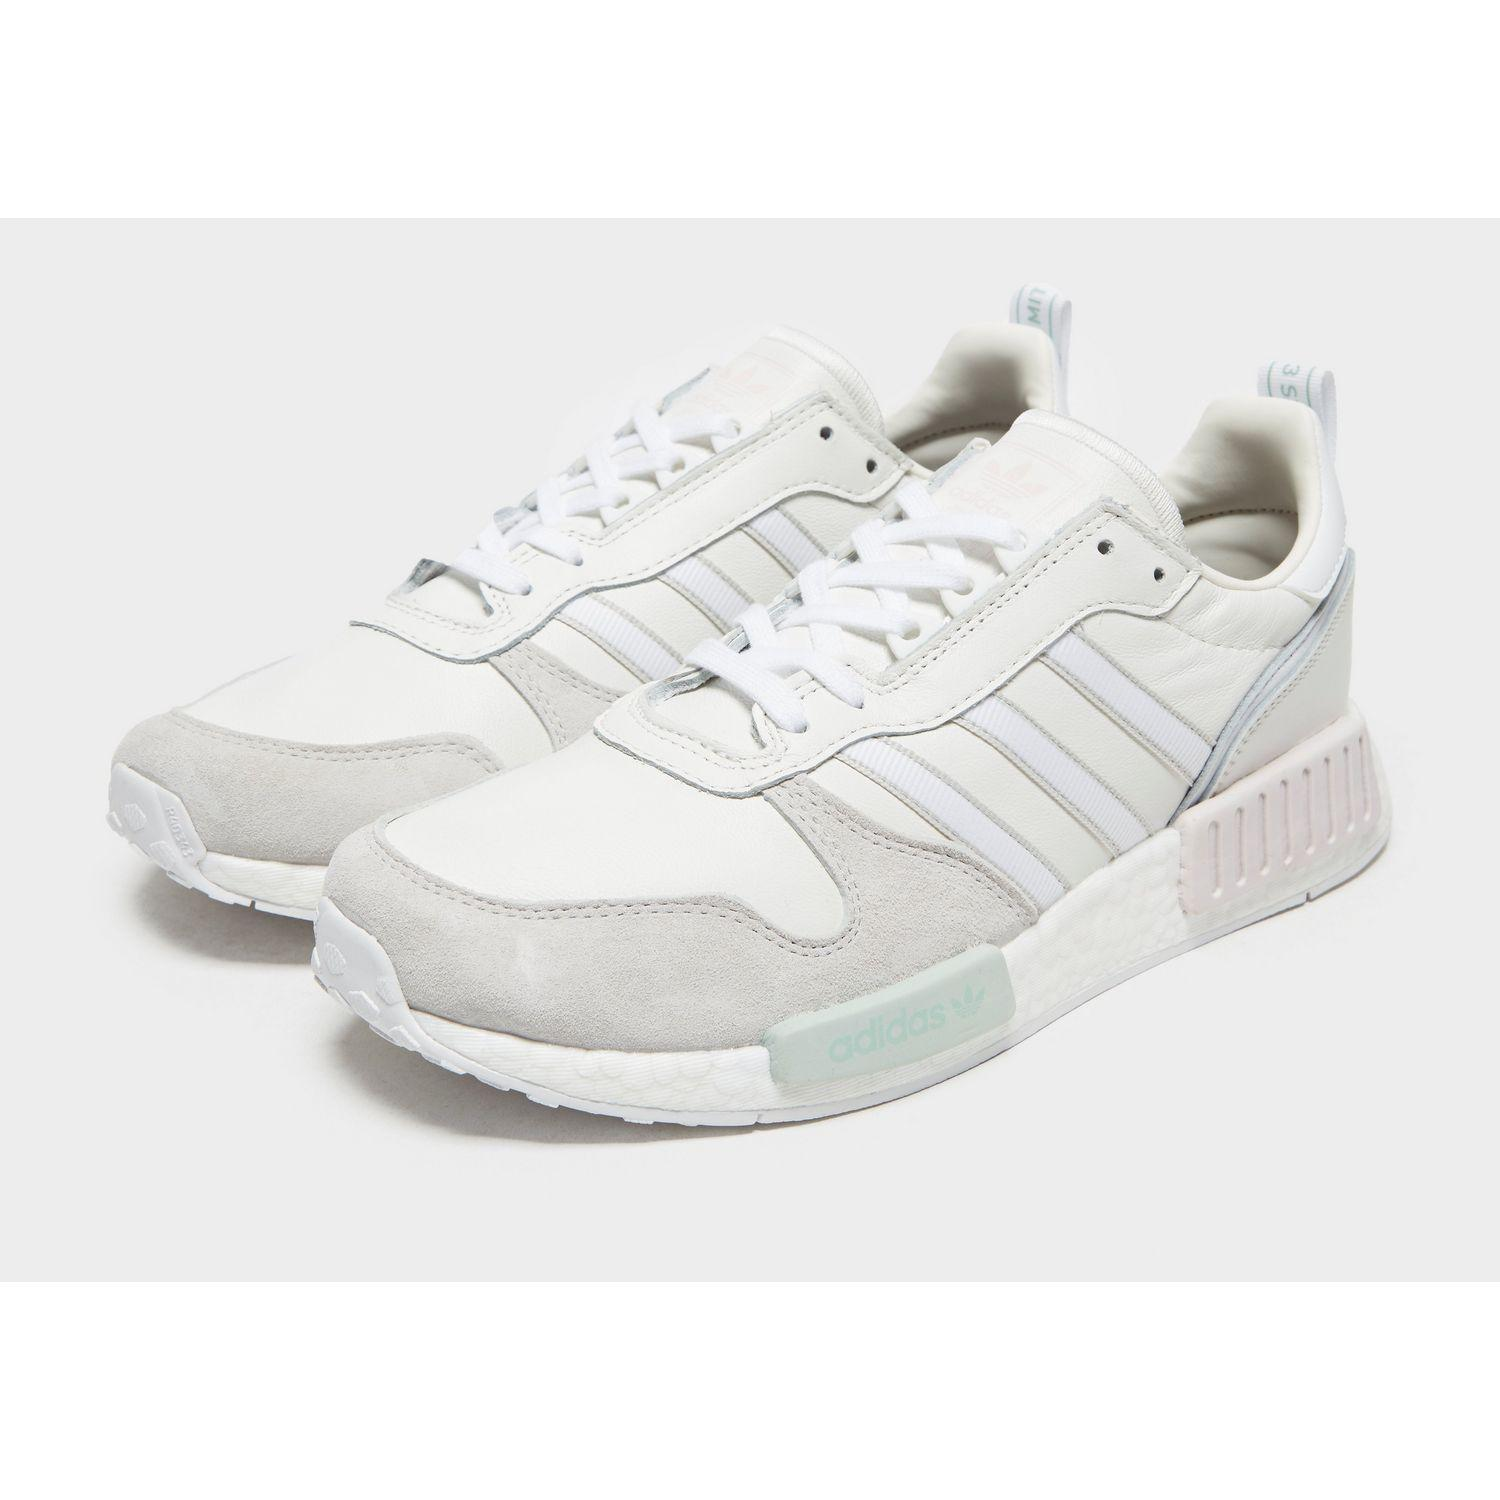 online store ab4b7 ebcae Adidas Originals White Rising Star Xr1 for men